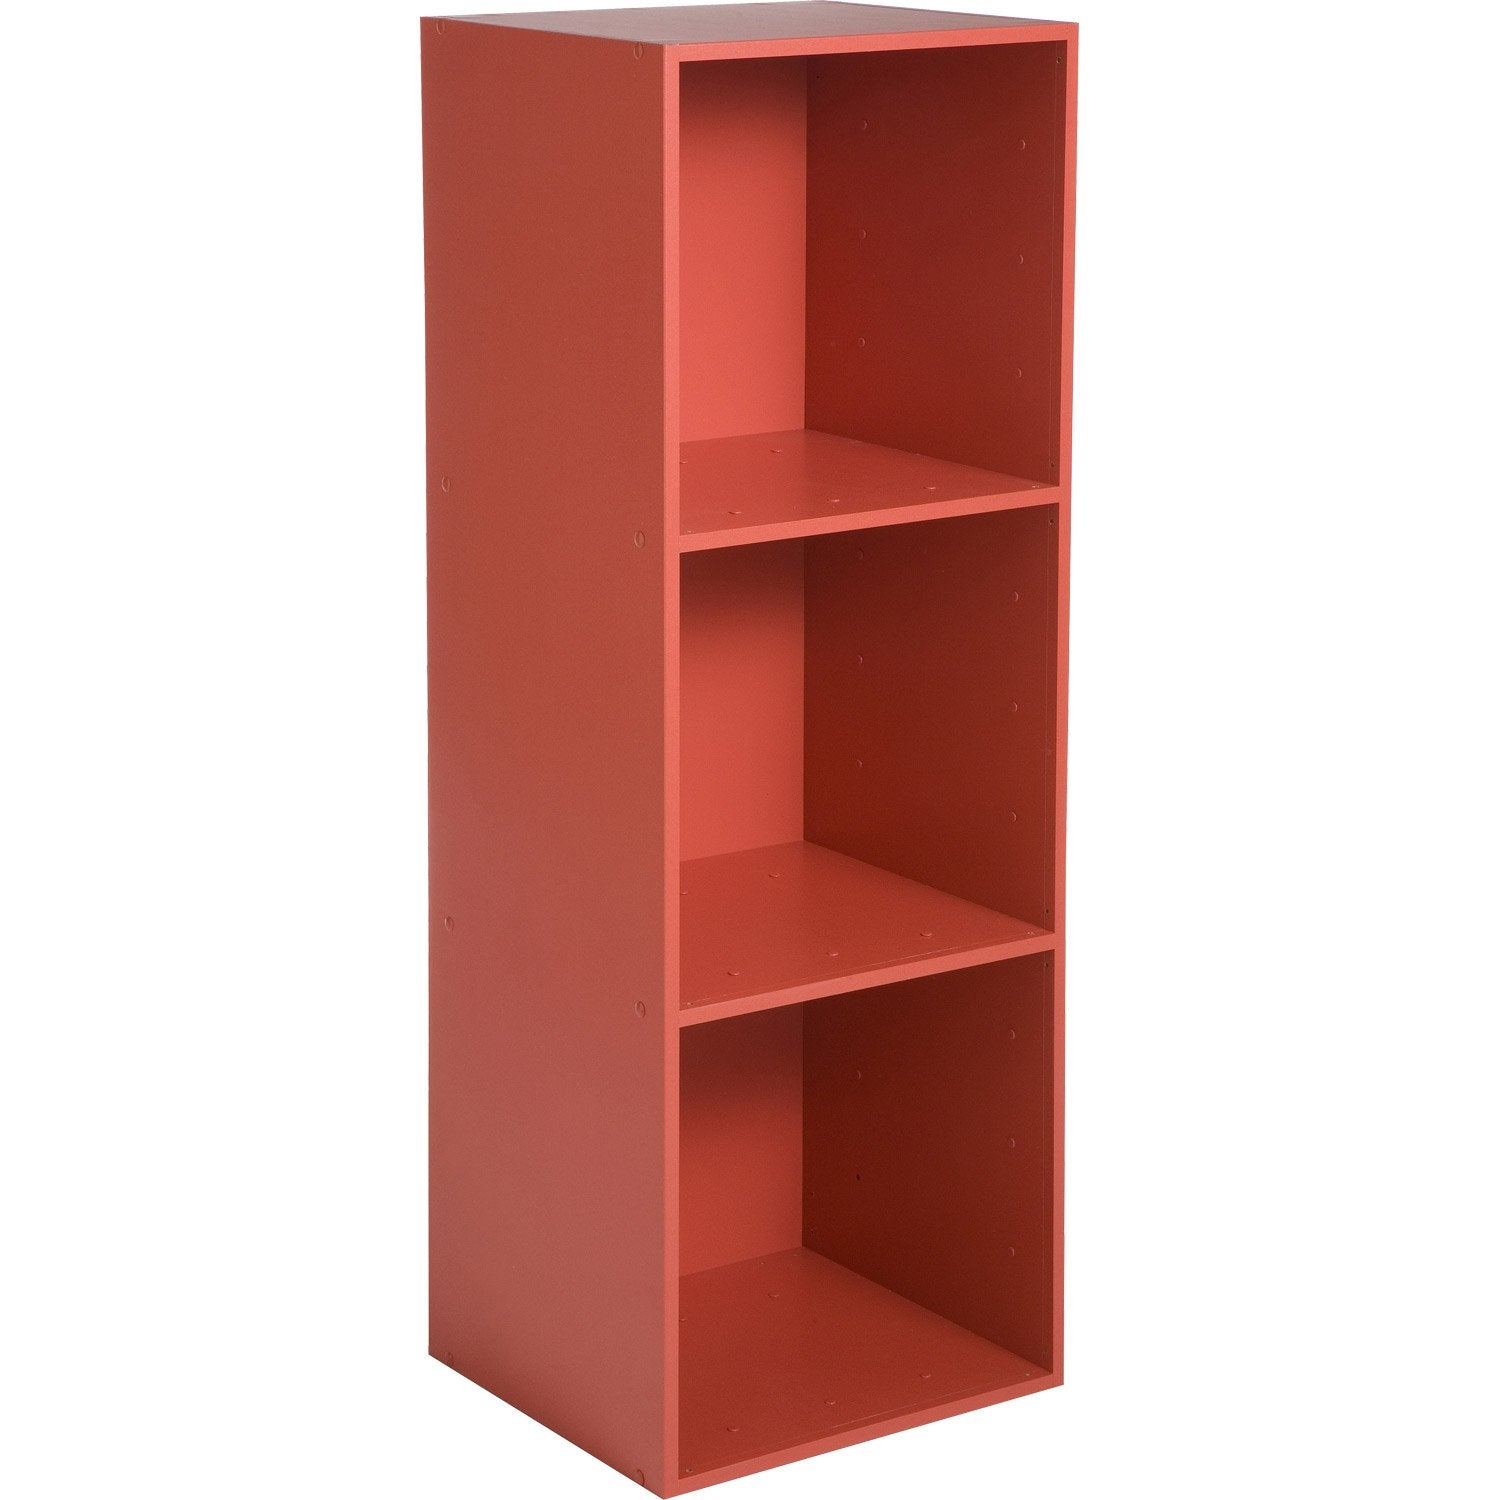 Etag re 3 cases multikaz rouge x x cm leroy merlin - Etagere murale rouge ...